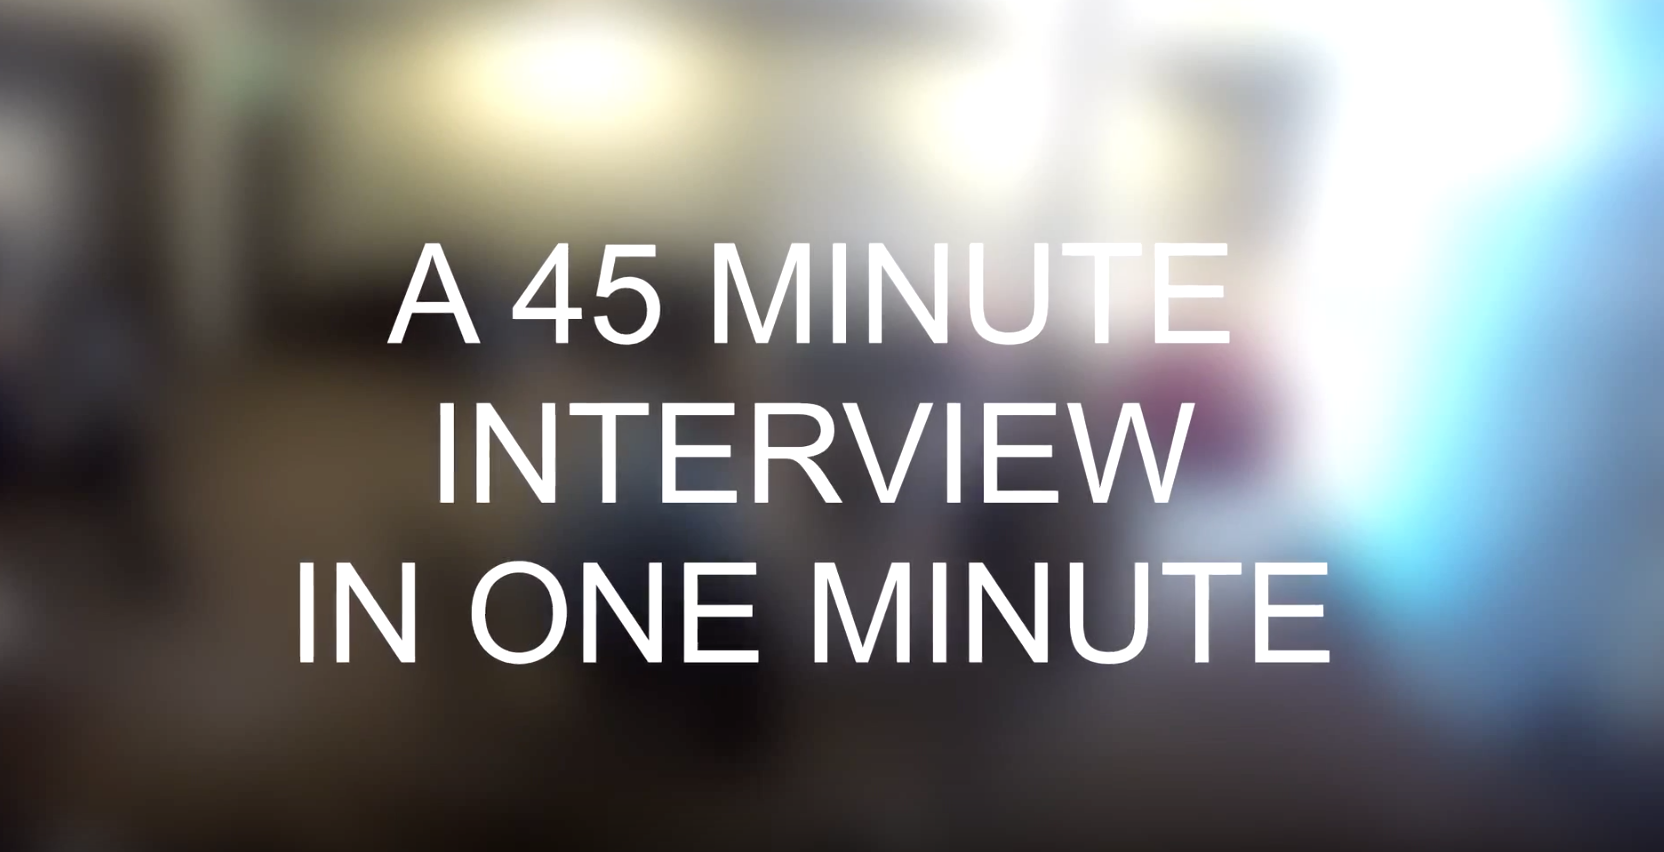 Here's what it takes to shoot an interview.